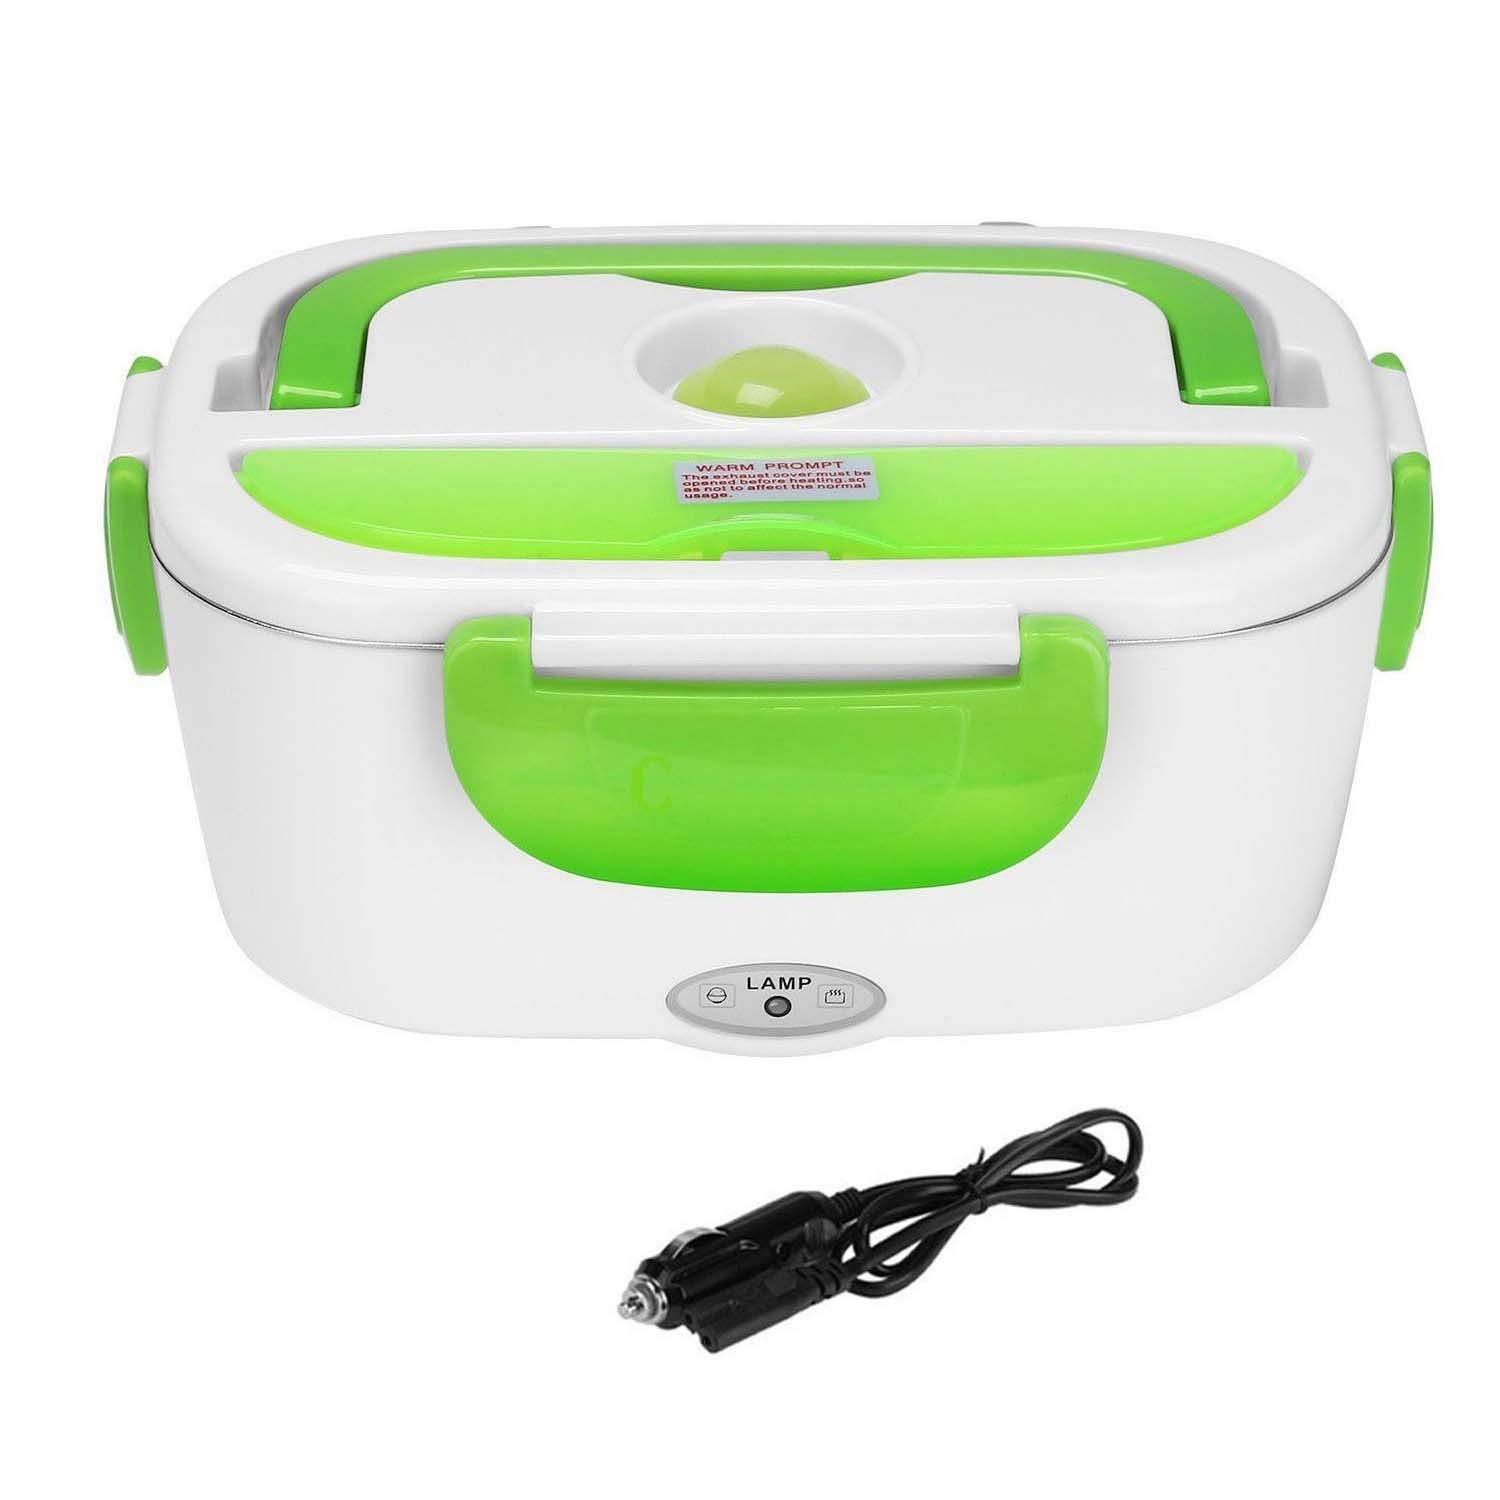 Vmotor Electric Lunch Box Food Heater 12V 40W Car-use Charging Adapter Portable Lunch Heater with Removable 304 Stainless Steel Container Food Grade Material(Green)